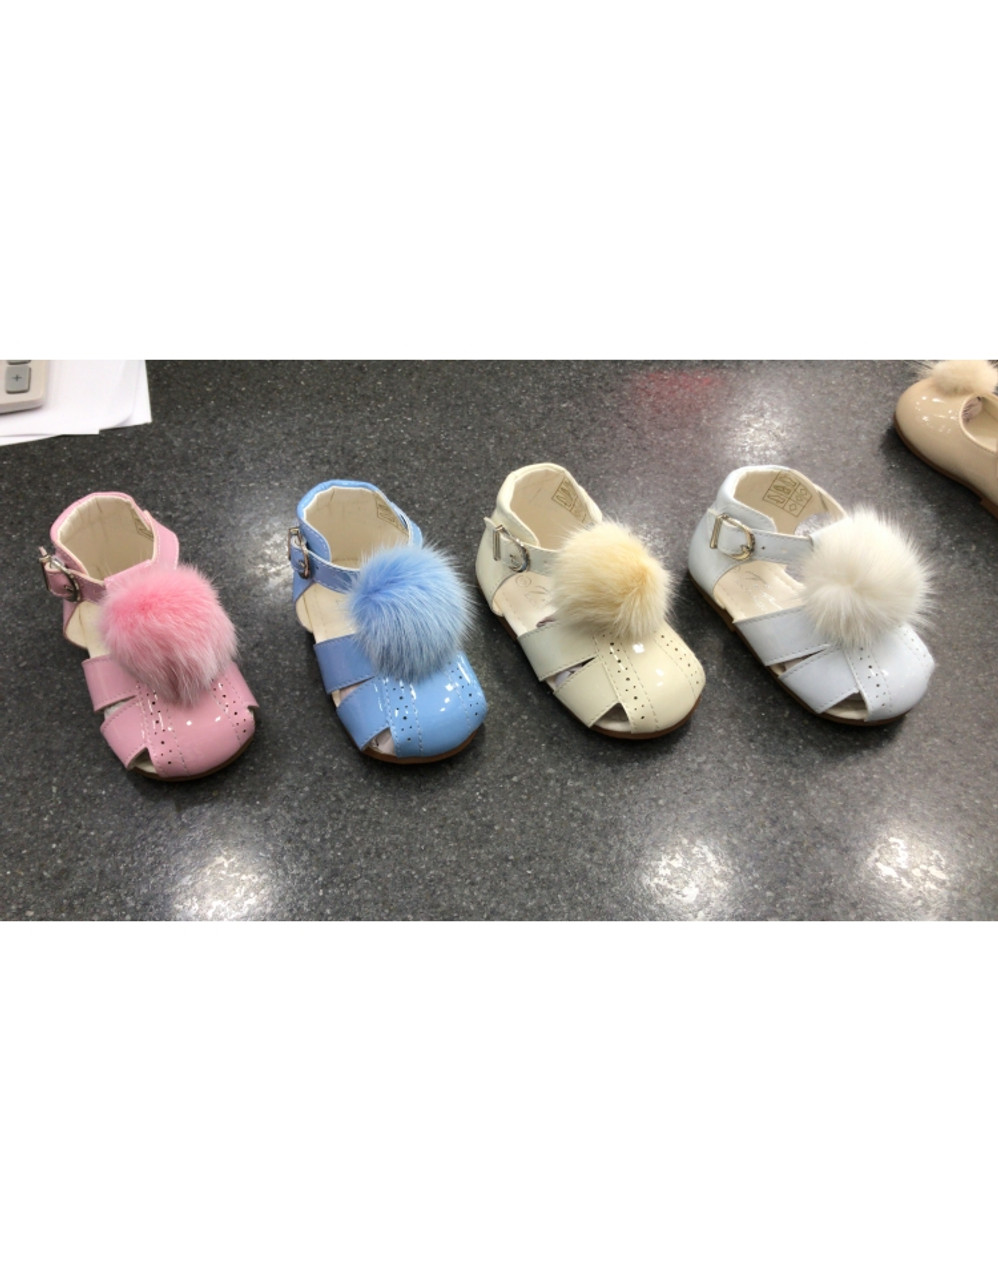 692d51e12 New Baby Girls Pom Pom Patent Shoes 3-10 (Pink, Pale Blue,